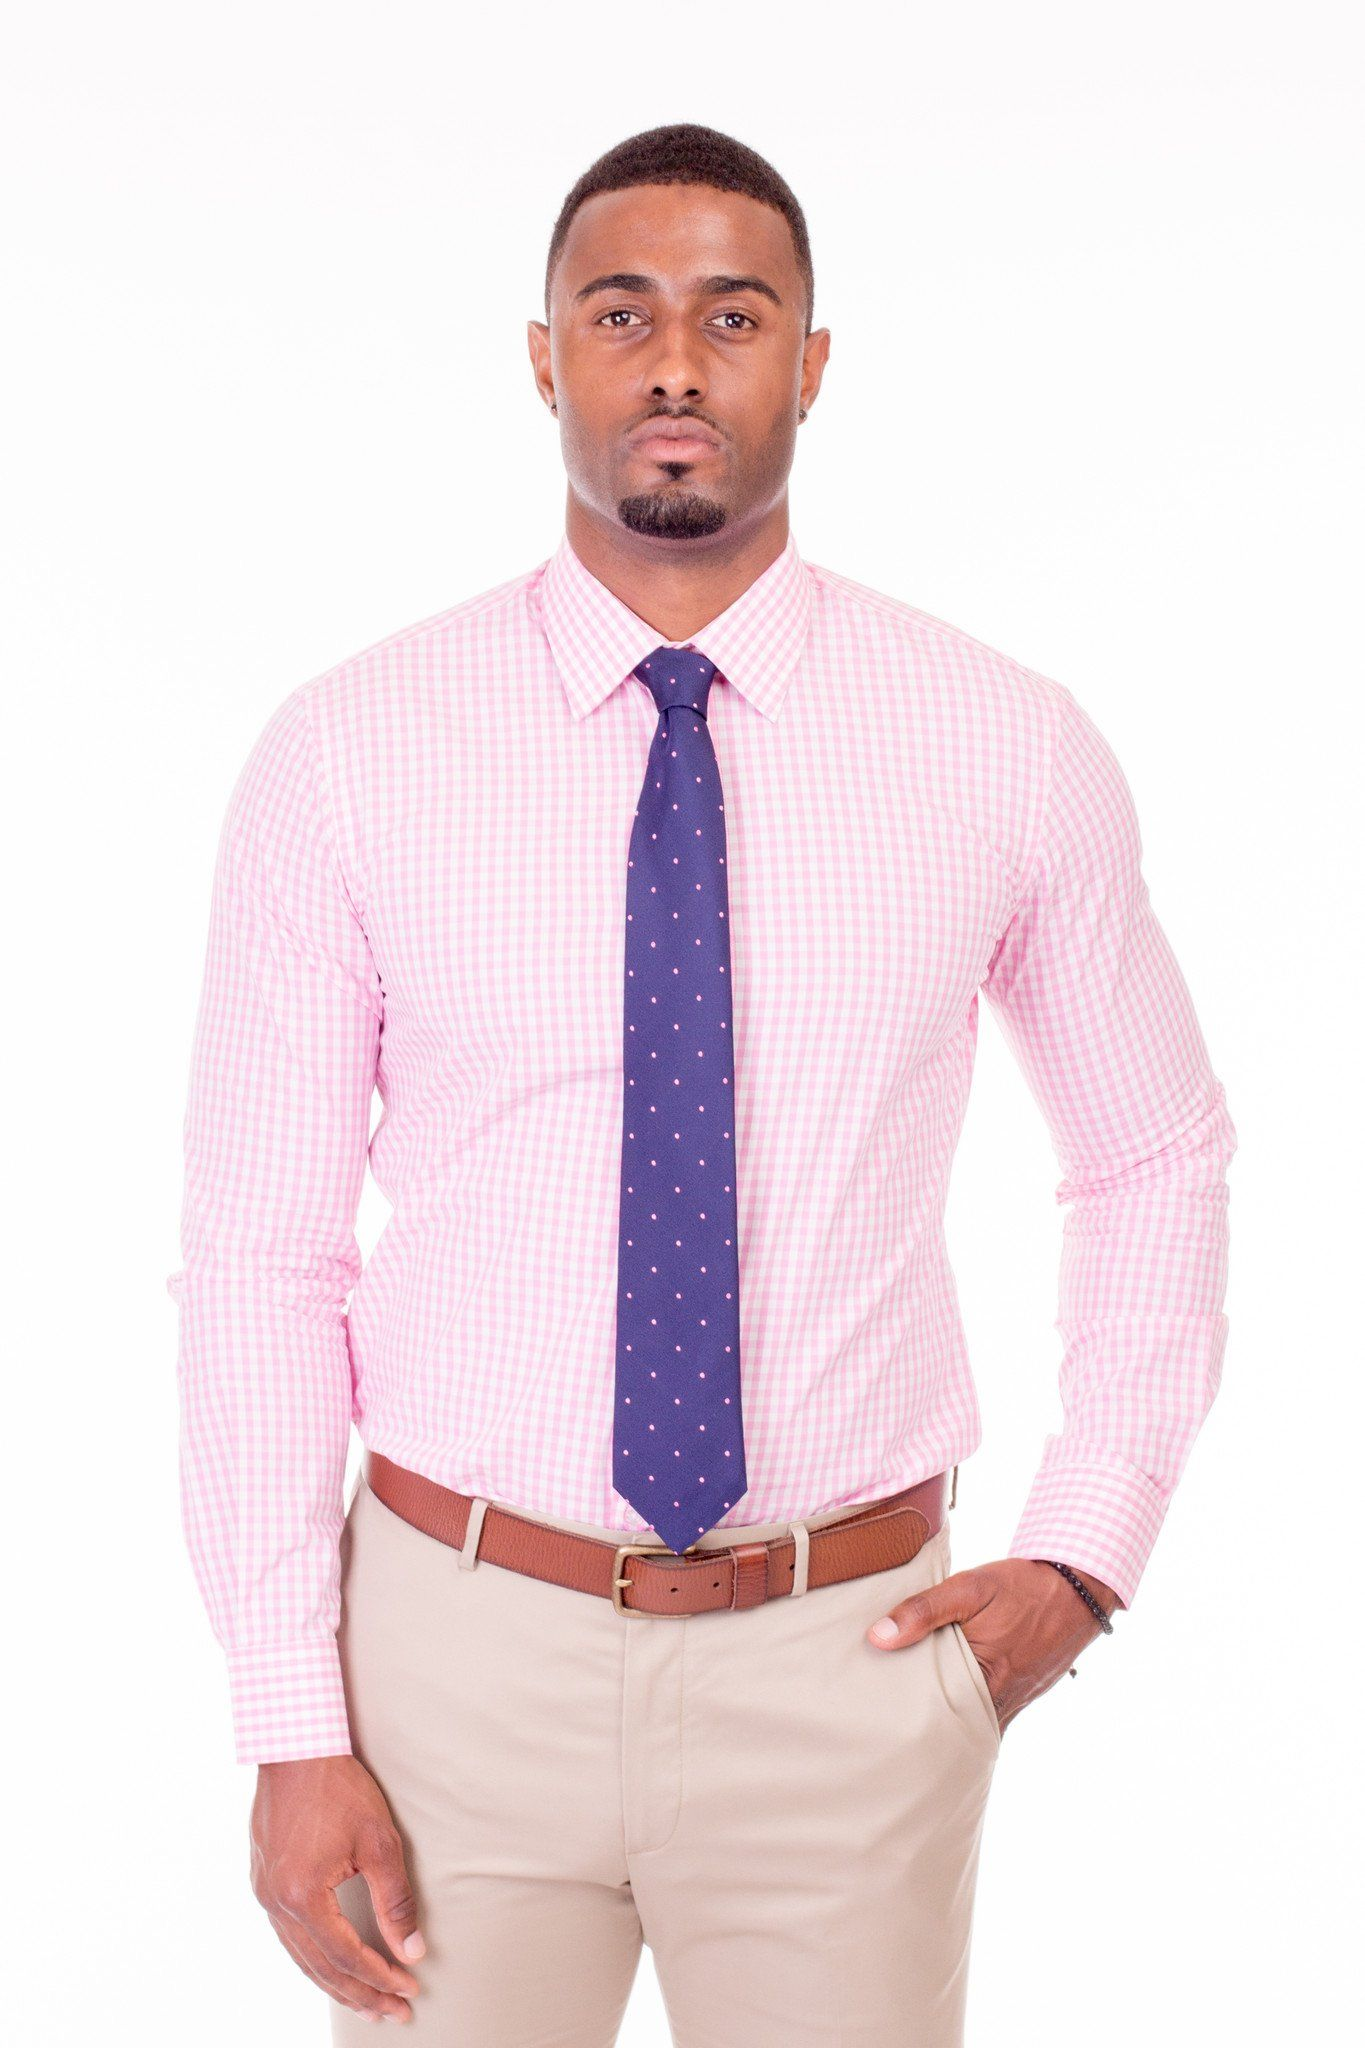 Pink and White Gingham Dress Shirt - Poor Little Rich Boy Custom Men's Dress Shirts - Plrbclothing.com